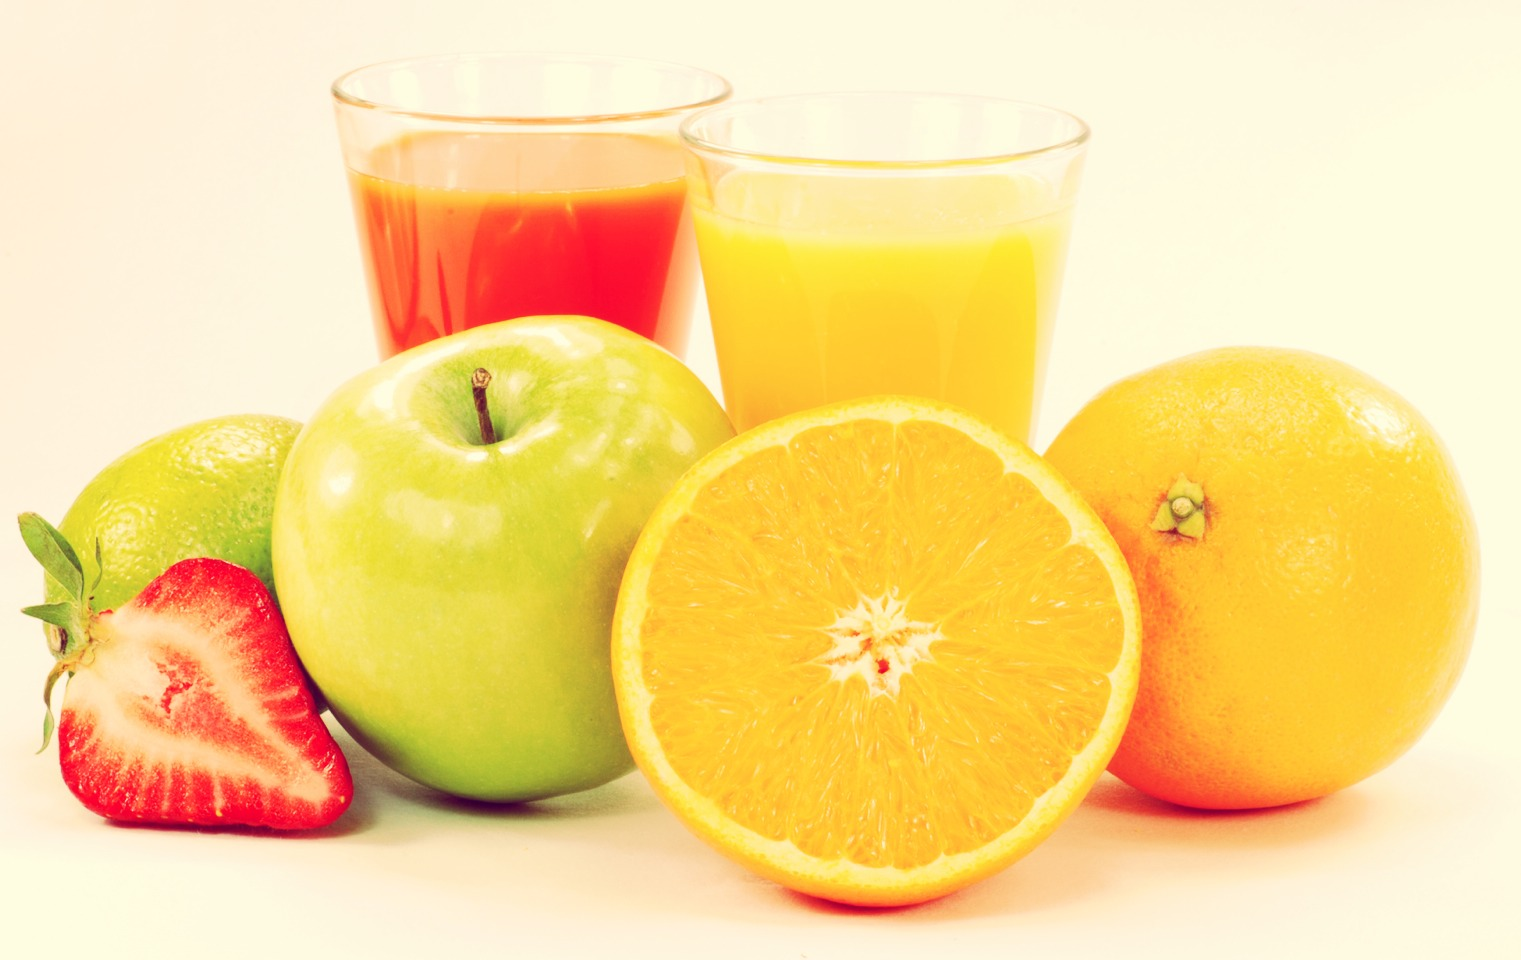 Juice your fruit! Or eat the fruit, but this is better. Mix in your favorite fruits with hints of healthy vegetables like spinach. It is super healthy, so add some and then load the fruit! My favorite juice: Blend apples, oranges, a hint of spinach, LOTS of kiwi, and Vóila!